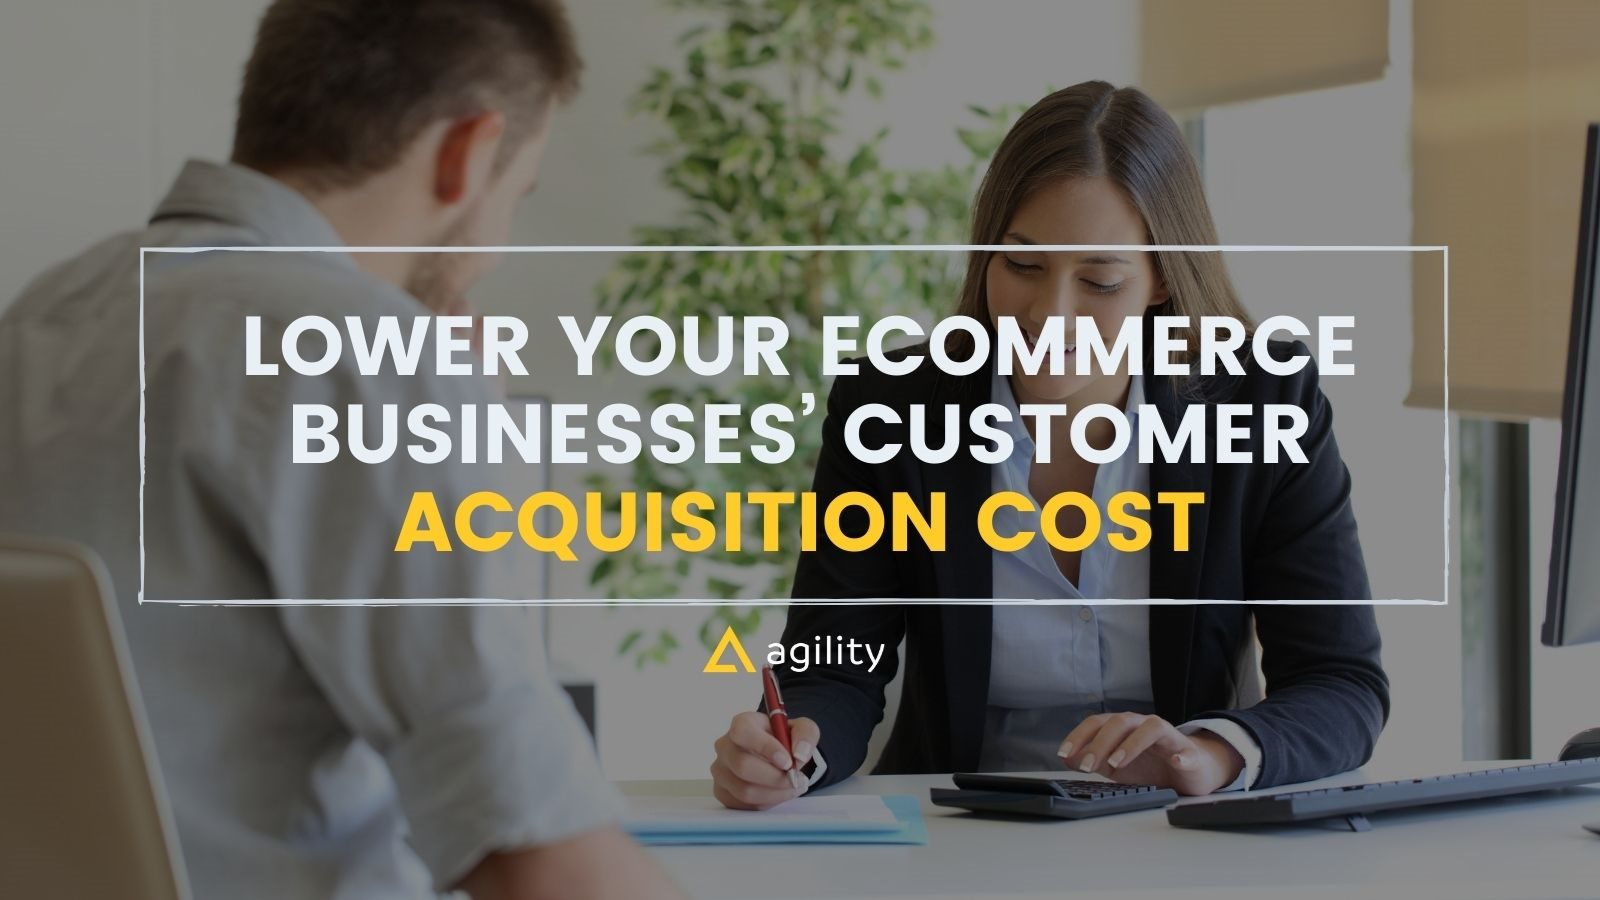 Lowering customer acquisition costs on agilitycms.com